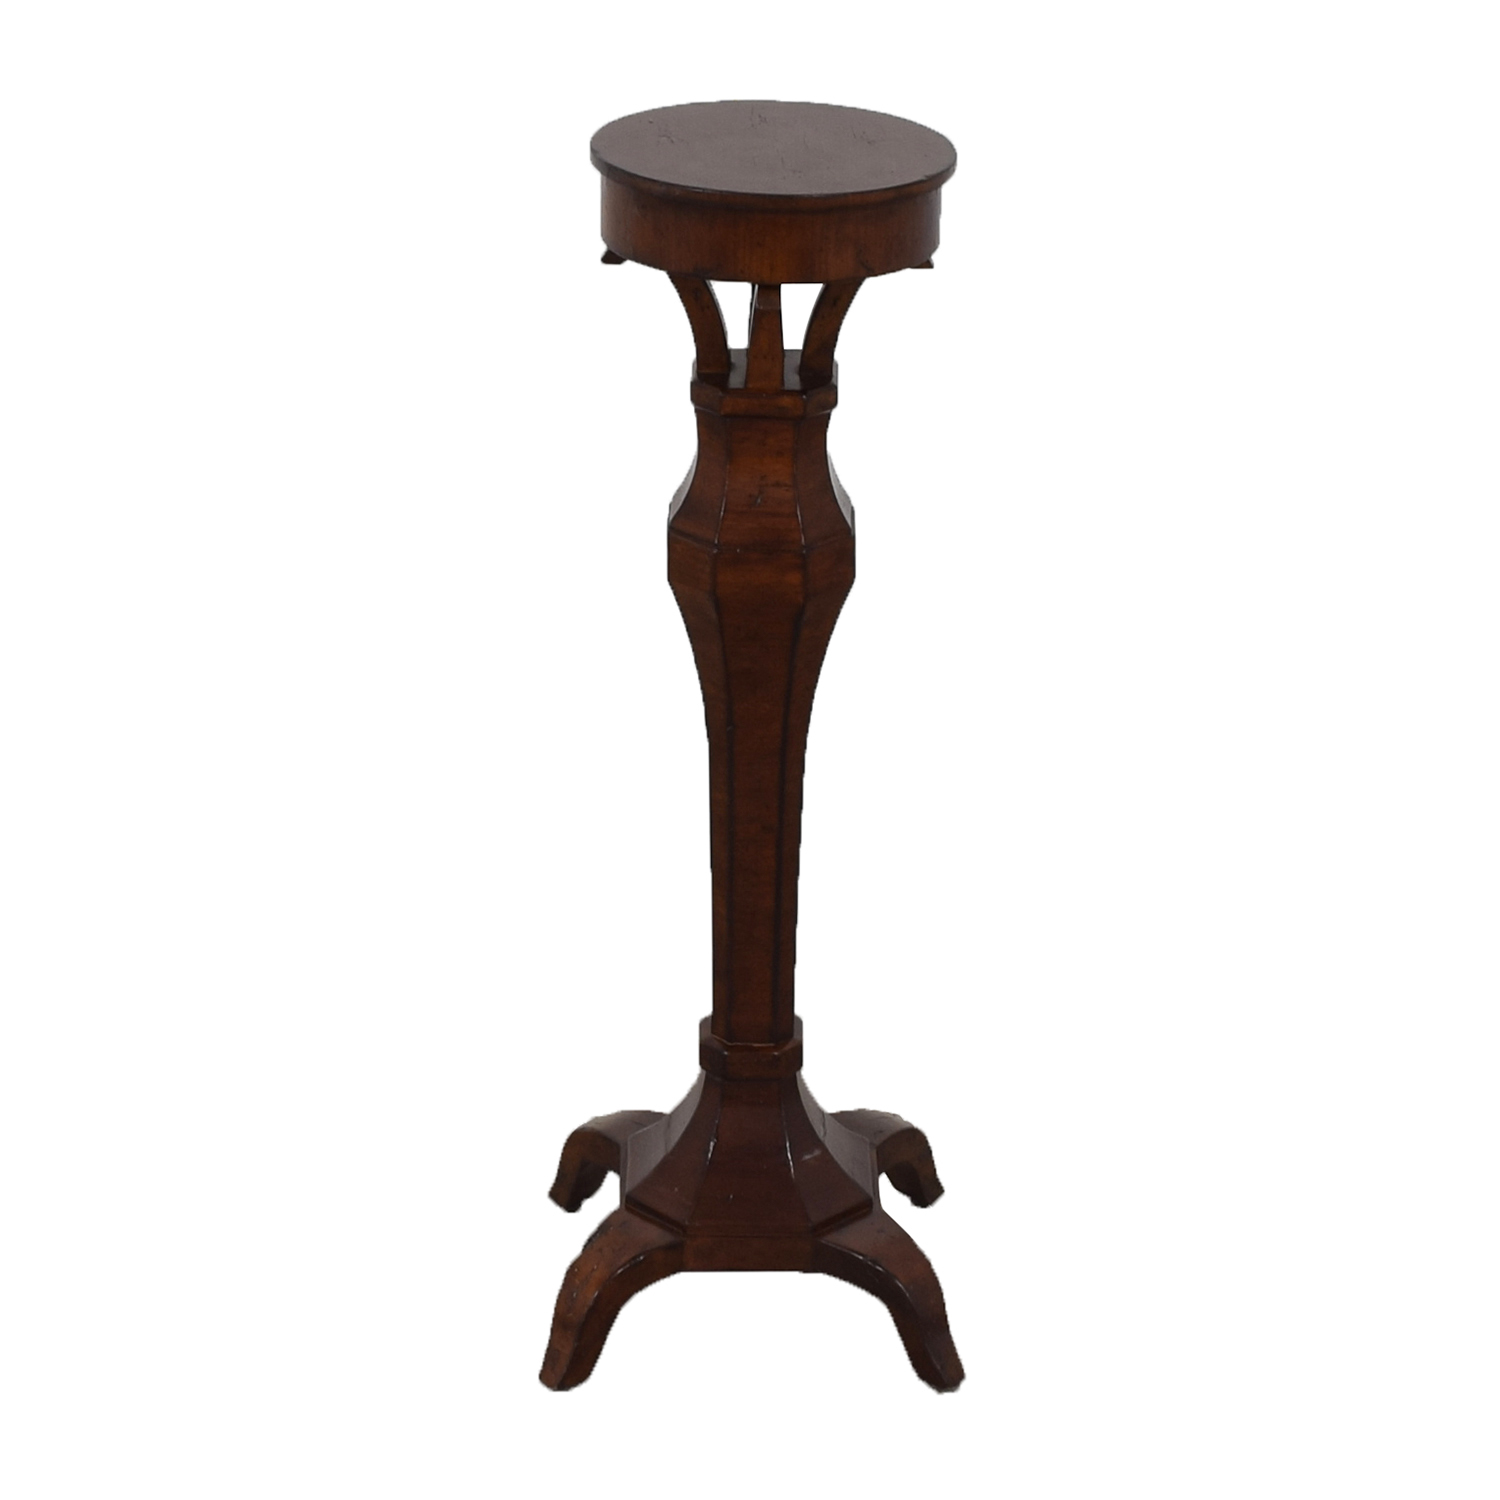 Carved Wood Display Pedestal for sale